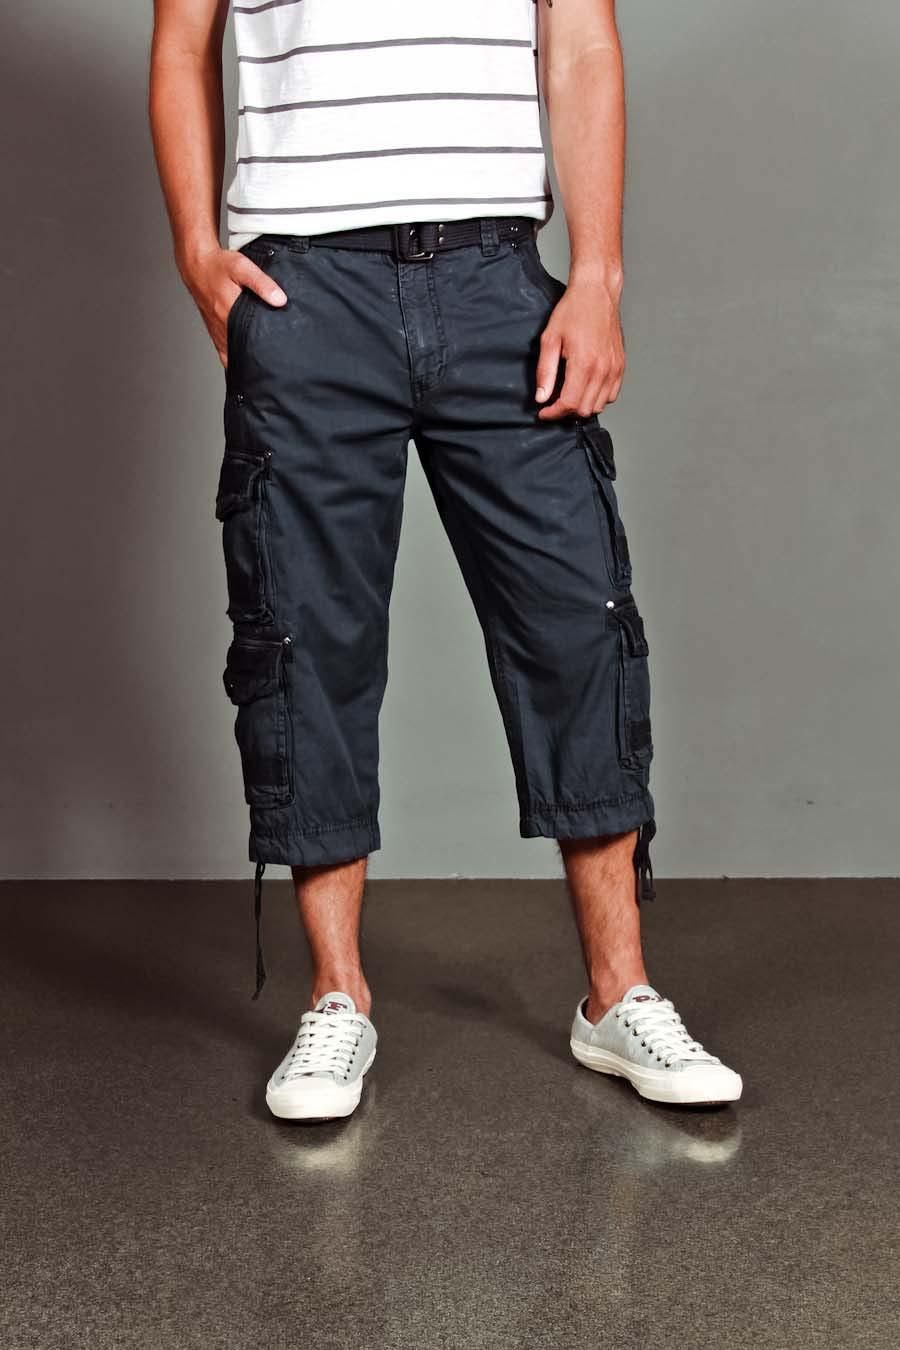 Calf Length Shorts With Cargo Pockets And Belt. Man Capri s e66293aeda1